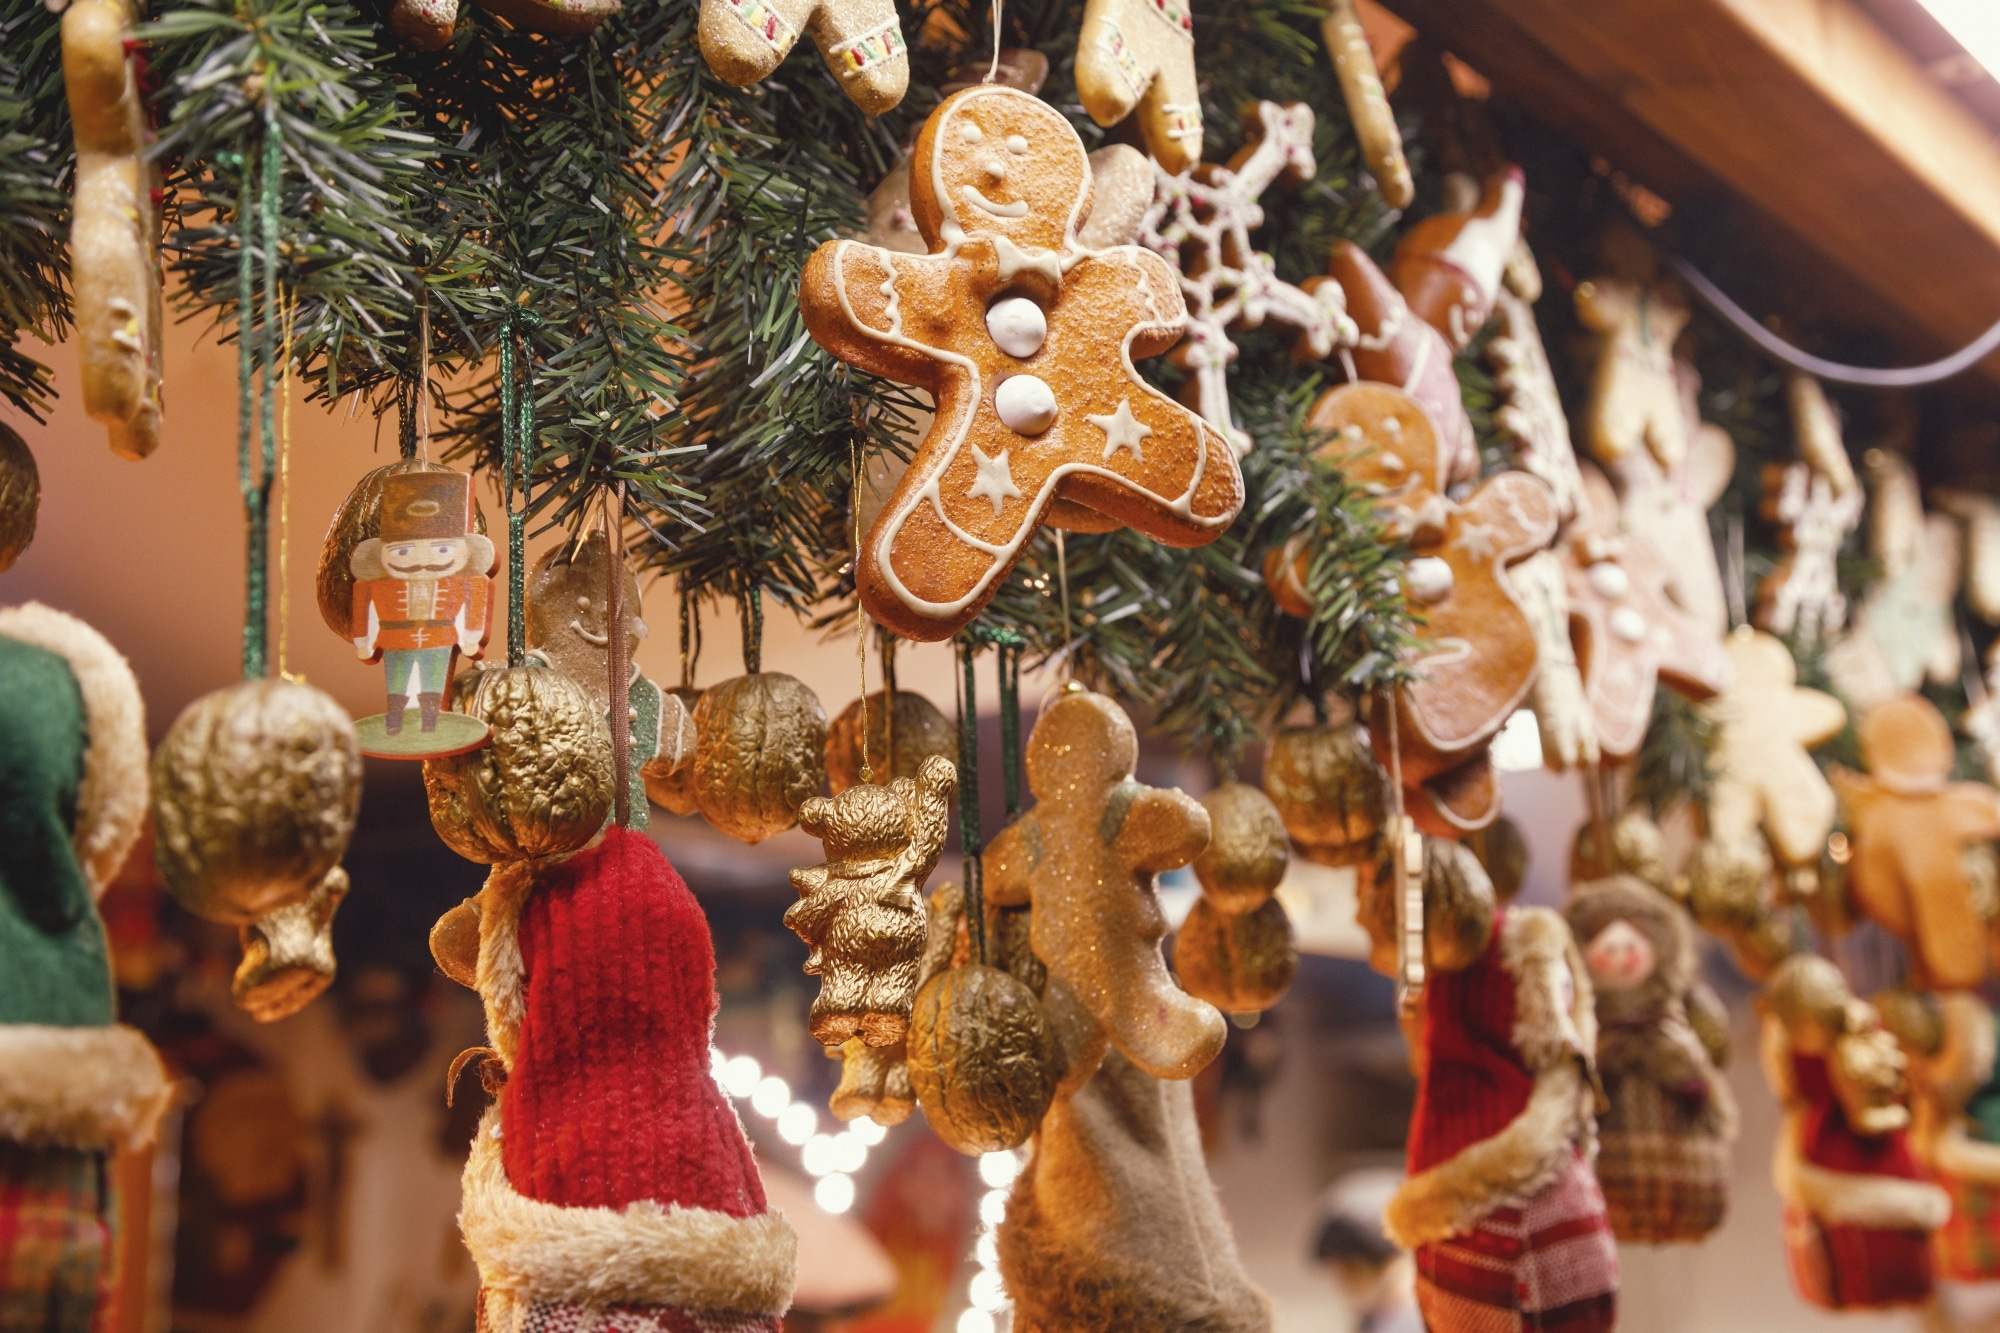 Adventstimmung (c) Adobe Stock